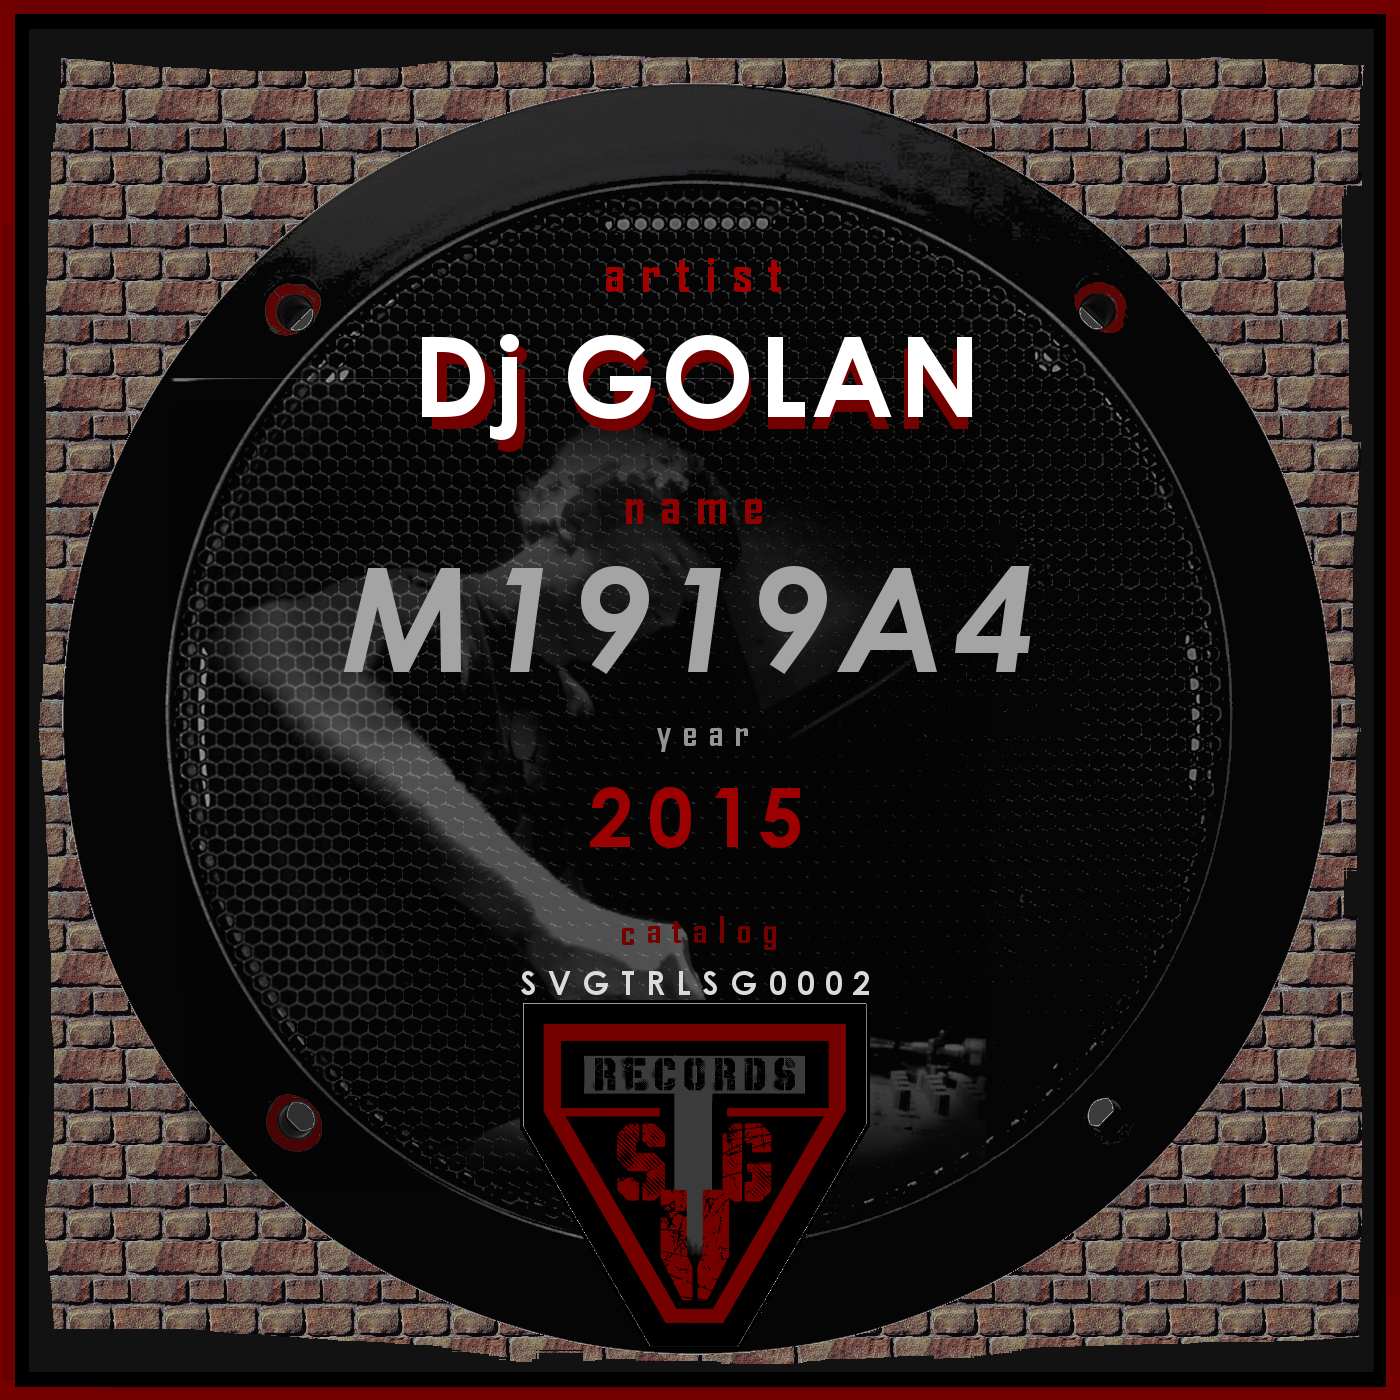 SAVAGE_TR_Cover_ART_1400x1400_DJ-GOLAN_M